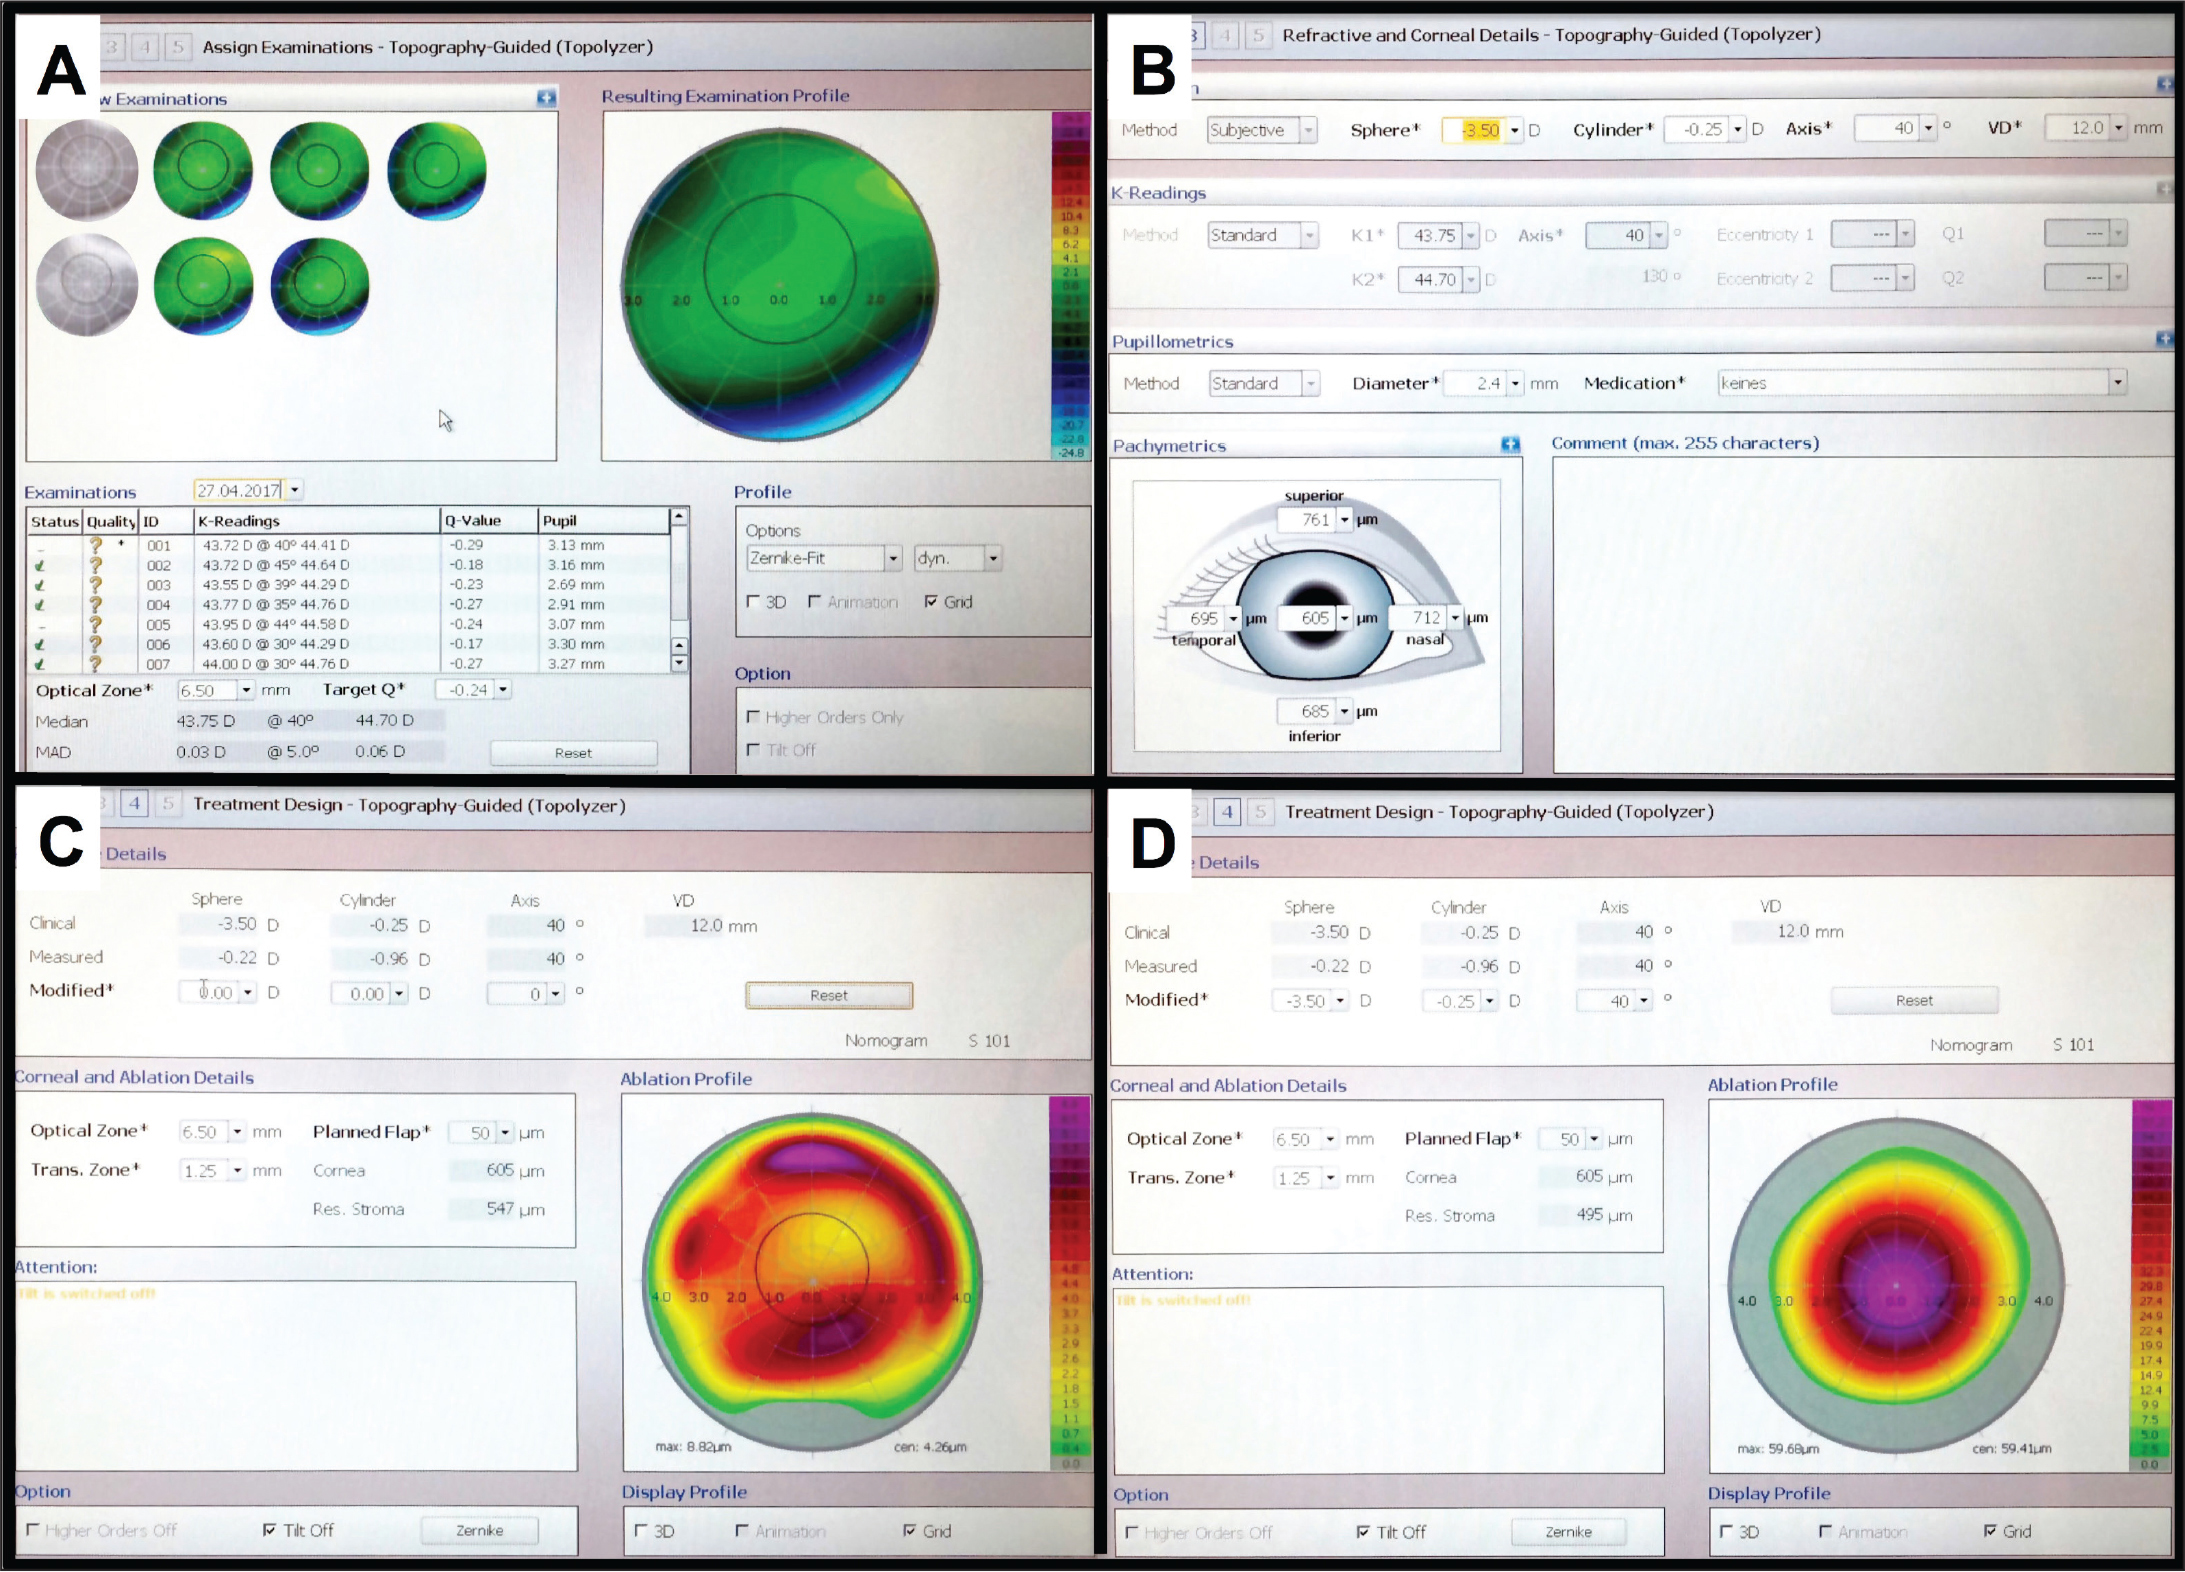 """(A) Data derived from the Topolyzer Vario system are uploaded to the Wavelight EX500 platform (Alcon Laboratories, Inc., Fort Worth, TX). The reproducibility of the maps and the measurements of keratometry and axes can be checked. In this clinical case, 7 scans were uploaded and only 5 were selected to plan the custom ablations (scans 1 and 5 were excluded). Note that the mean average deviation (MAD) was less than 0.05 diopters. (B) After the Topolyzer scans are processed, the patient's manifest refraction (""""Method Subjective""""), pachymetry values, and pupil size are entered in the software. (C) On this display, the surgeon can evaluate the discrepancy between manifest versus measured astigmatic axis. In the figure, the difference between the refractive and topographic astigmatism axis was less than 15°. The higher order aberrations ablation profile is displayed when the refractive error is set by the user to zero sphere and cylinder (""""Modified""""). This image shows the ablation that would be attempted to regularize the cornea regarding the corneal vertex. In the current case, a tetrafoil-like pattern and a maximum ablation of less than 10 microns are shown. (D) The subjective refraction is introduced again (""""Modified"""") to visualize the final ablation profile (optical zone of 6.5 mm). """"Clinical"""" refraction should contain manifest refraction without nomogram adjustment. """"Measured"""" refraction is the one measured by the Topolyzer Vario device. The """"Measured"""" spherical component has no clinical significance. It is the best fit sphere and should not be used for surgery planning. The """"Measured"""" cylinder and axis components are required for planning and are usually different from the ones of the manifest refraction. They are derived from the analysis of the anterior corneal elevation and are separated from the corneal higher order aberrations (coma, trefoil, etc.). """"Modified"""" refraction is the treatment that the excimer laser will use and must be determined by the surgeon. Re"""